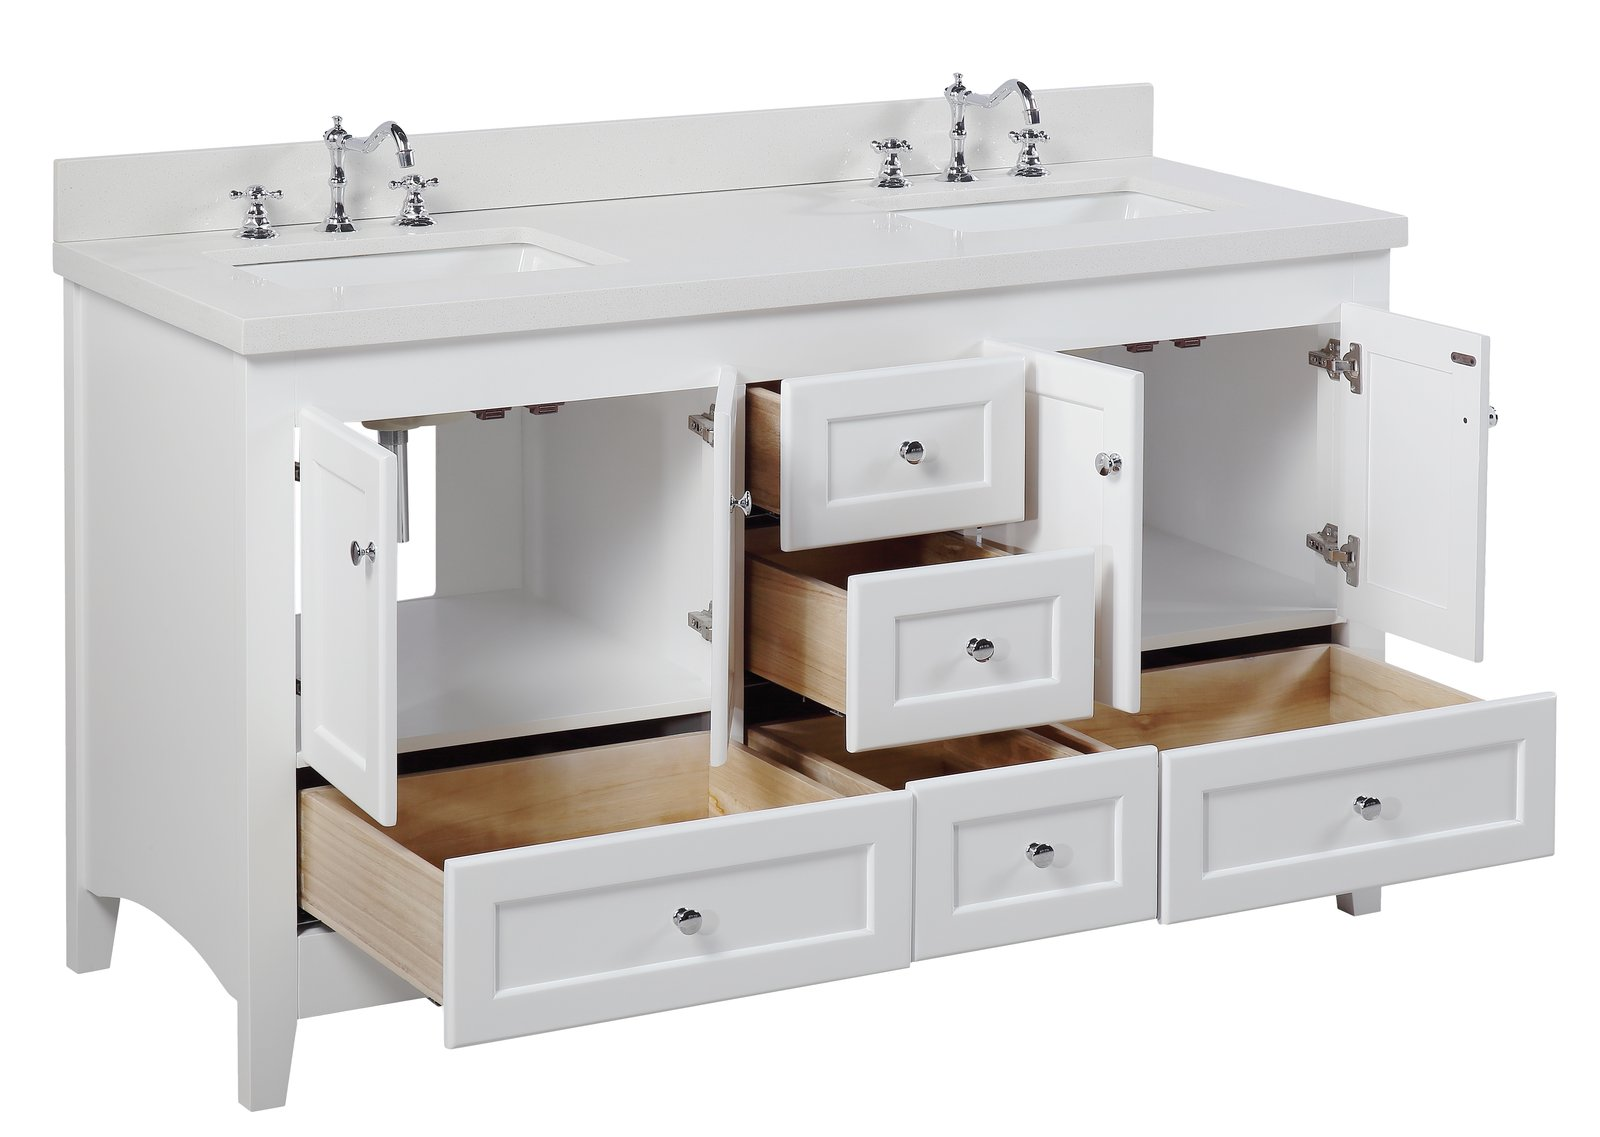 Abbey 60 Shaker Style Double Sink Bathroom Vanity With Quartz Top Kitchenbathcollection